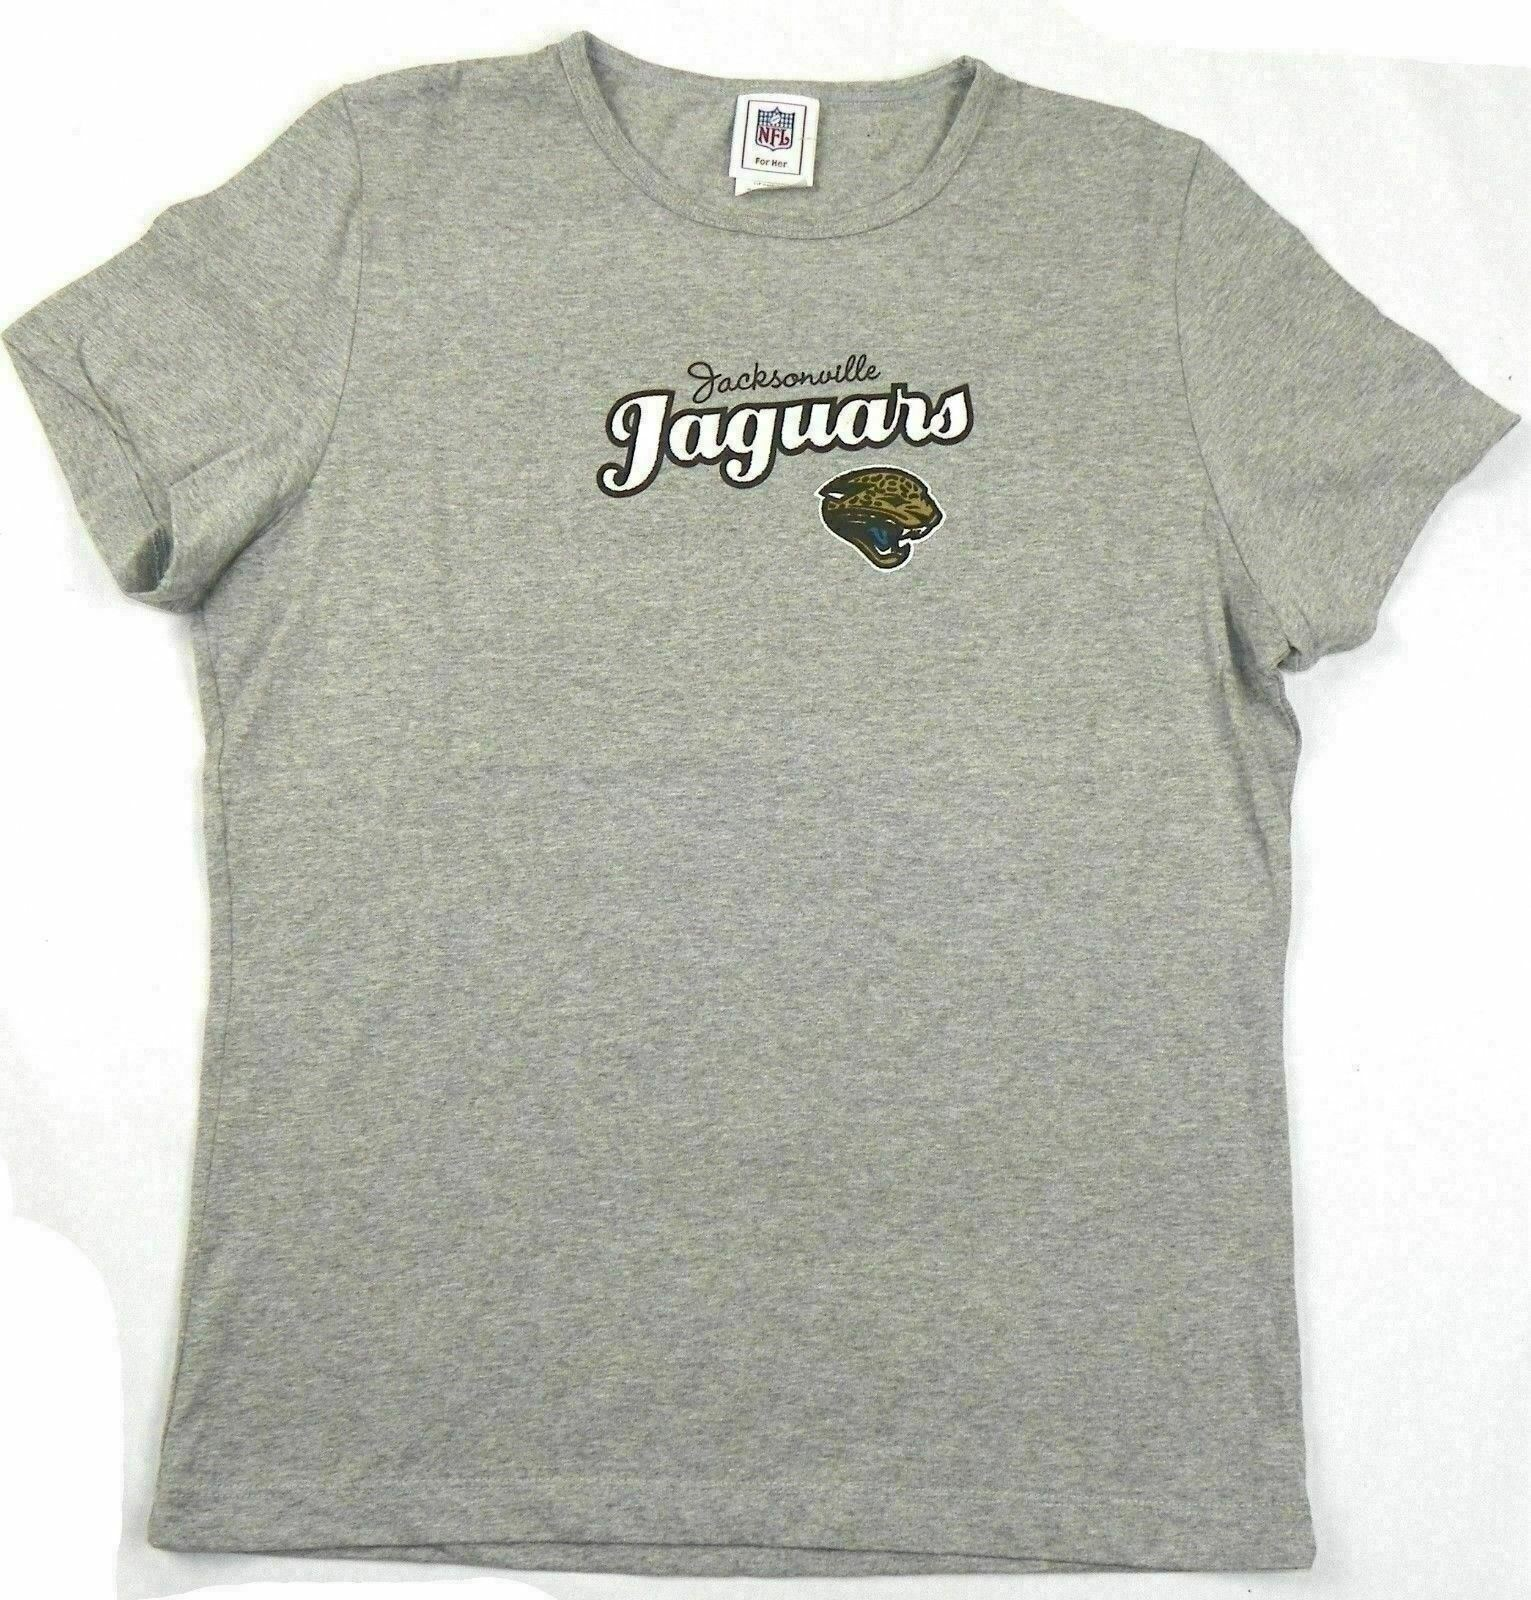 Junior Women's Size Large Jacksonville Jaguars Shirt Athletic Grey Tee